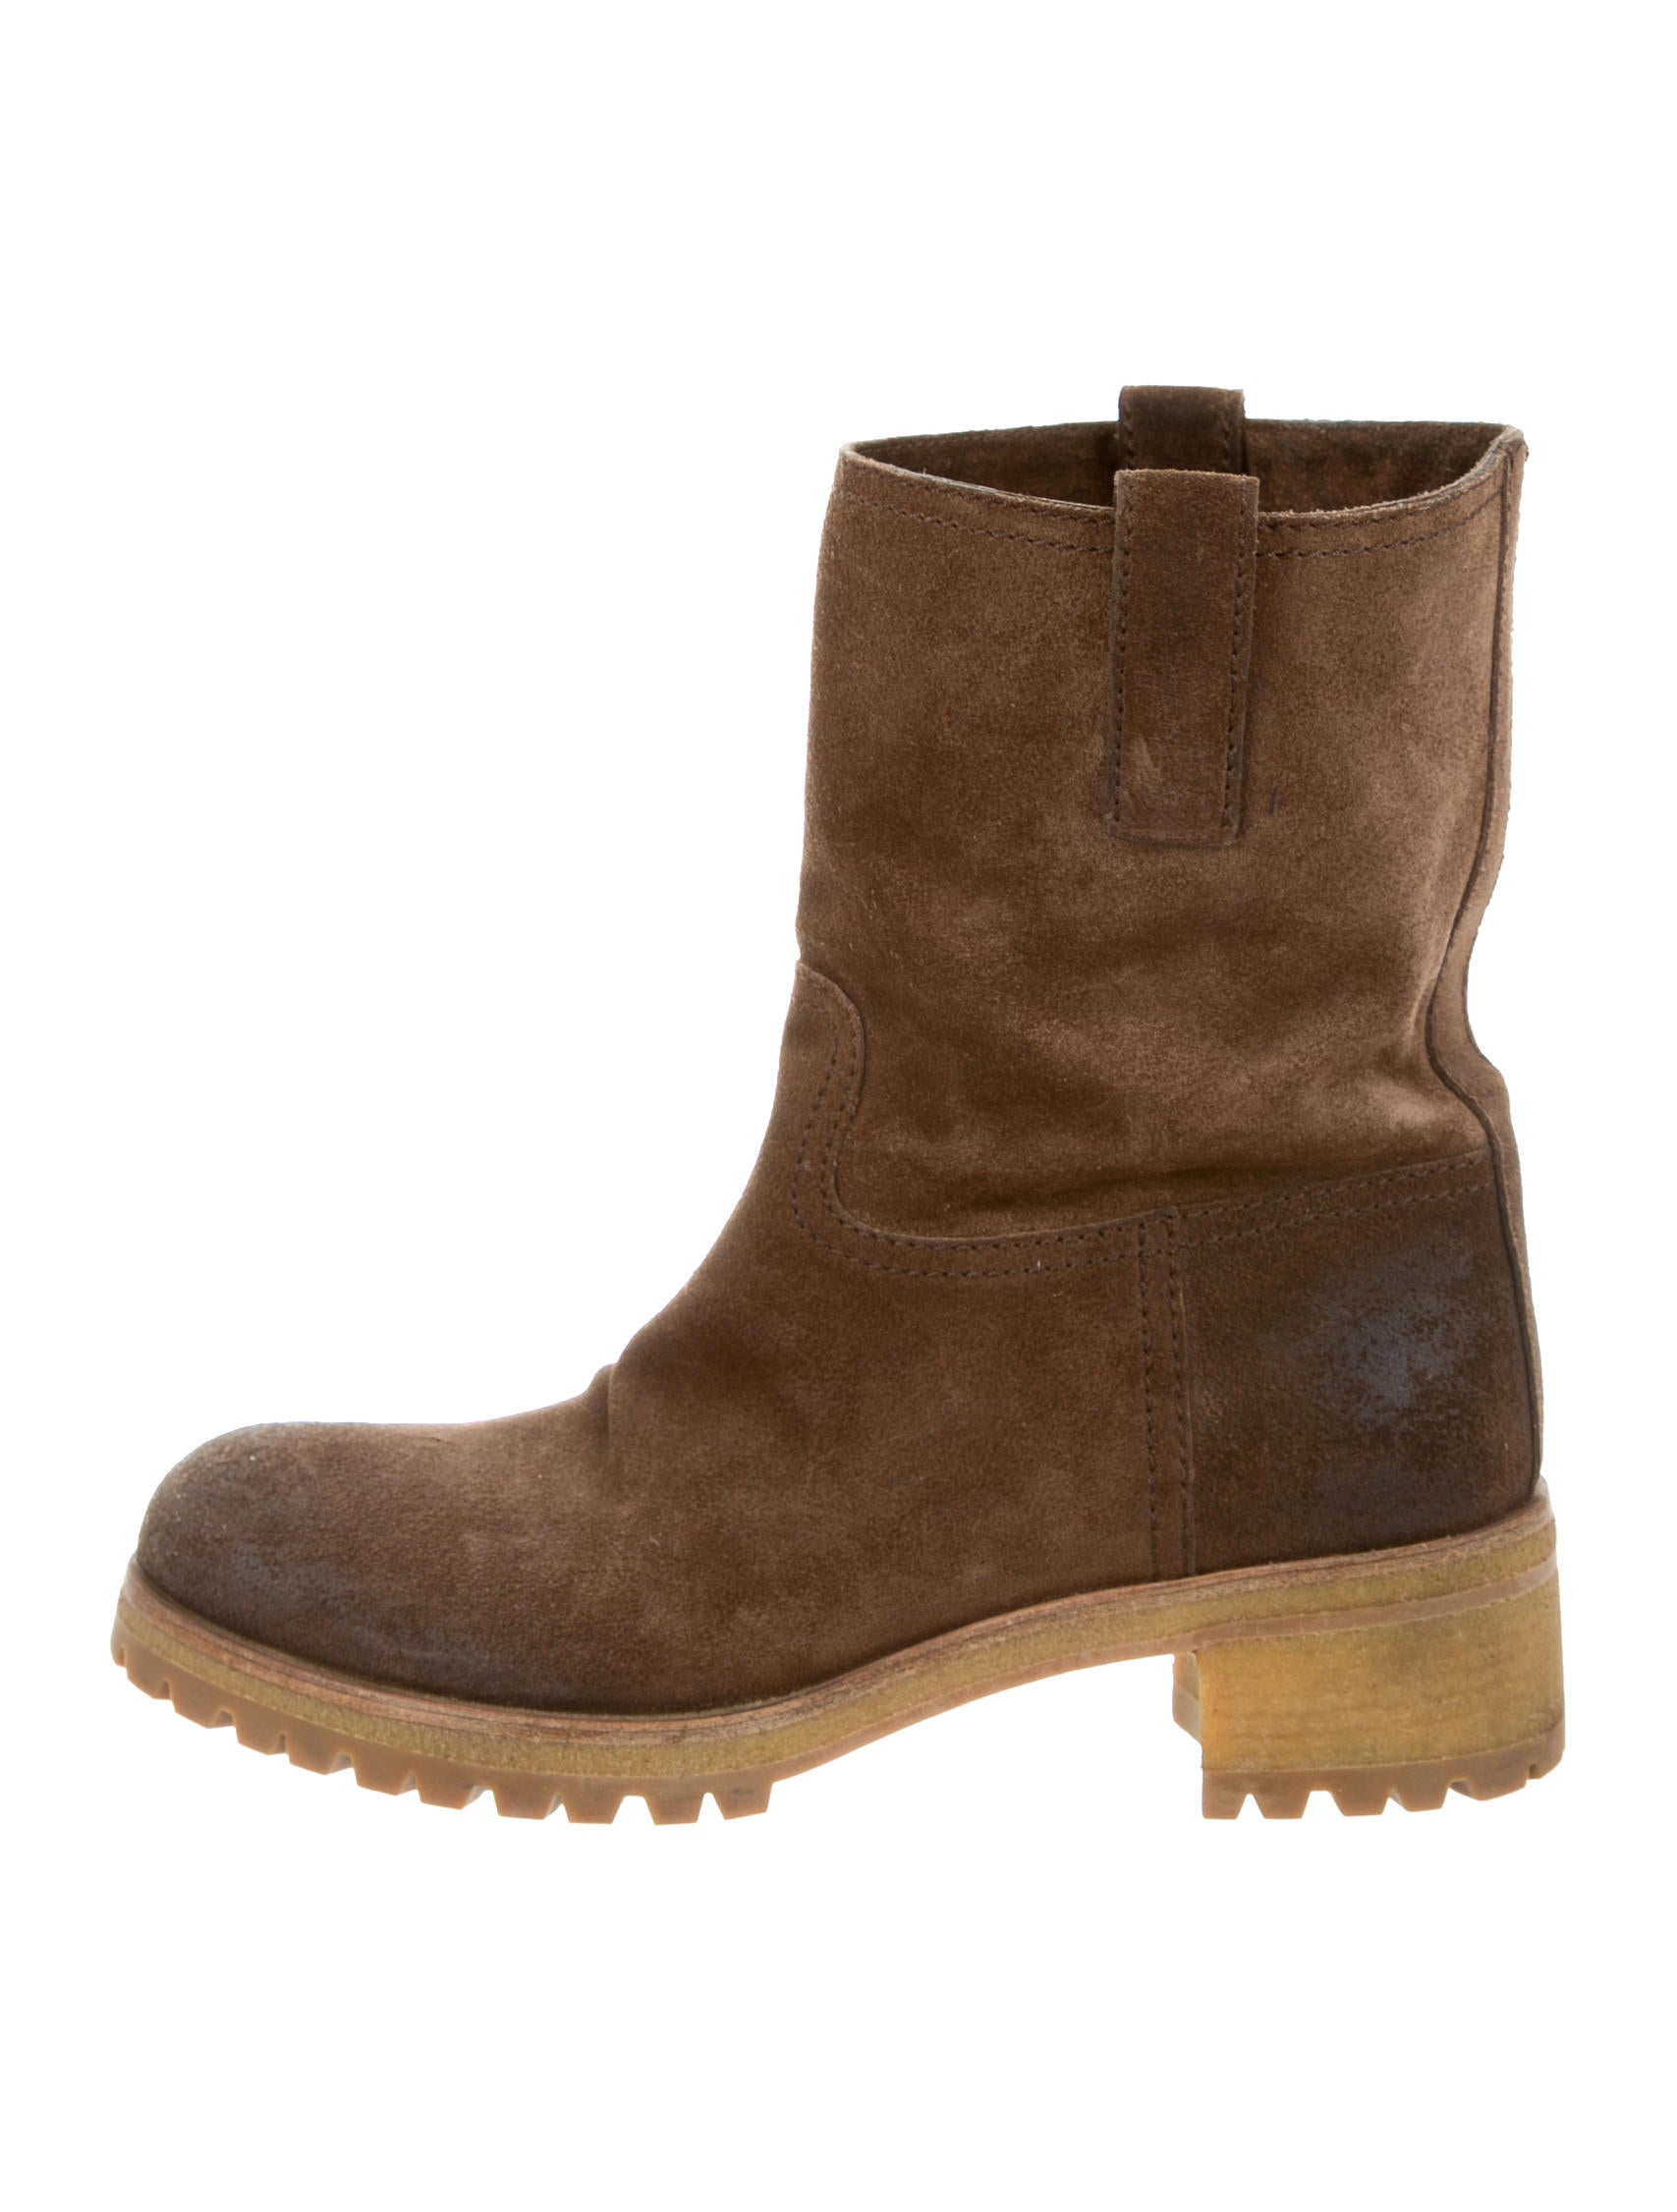 Find suede ankle boot no heel at ShopStyle. Shop the latest collection of suede ankle boot no heel from the most popular stores - all in one place.